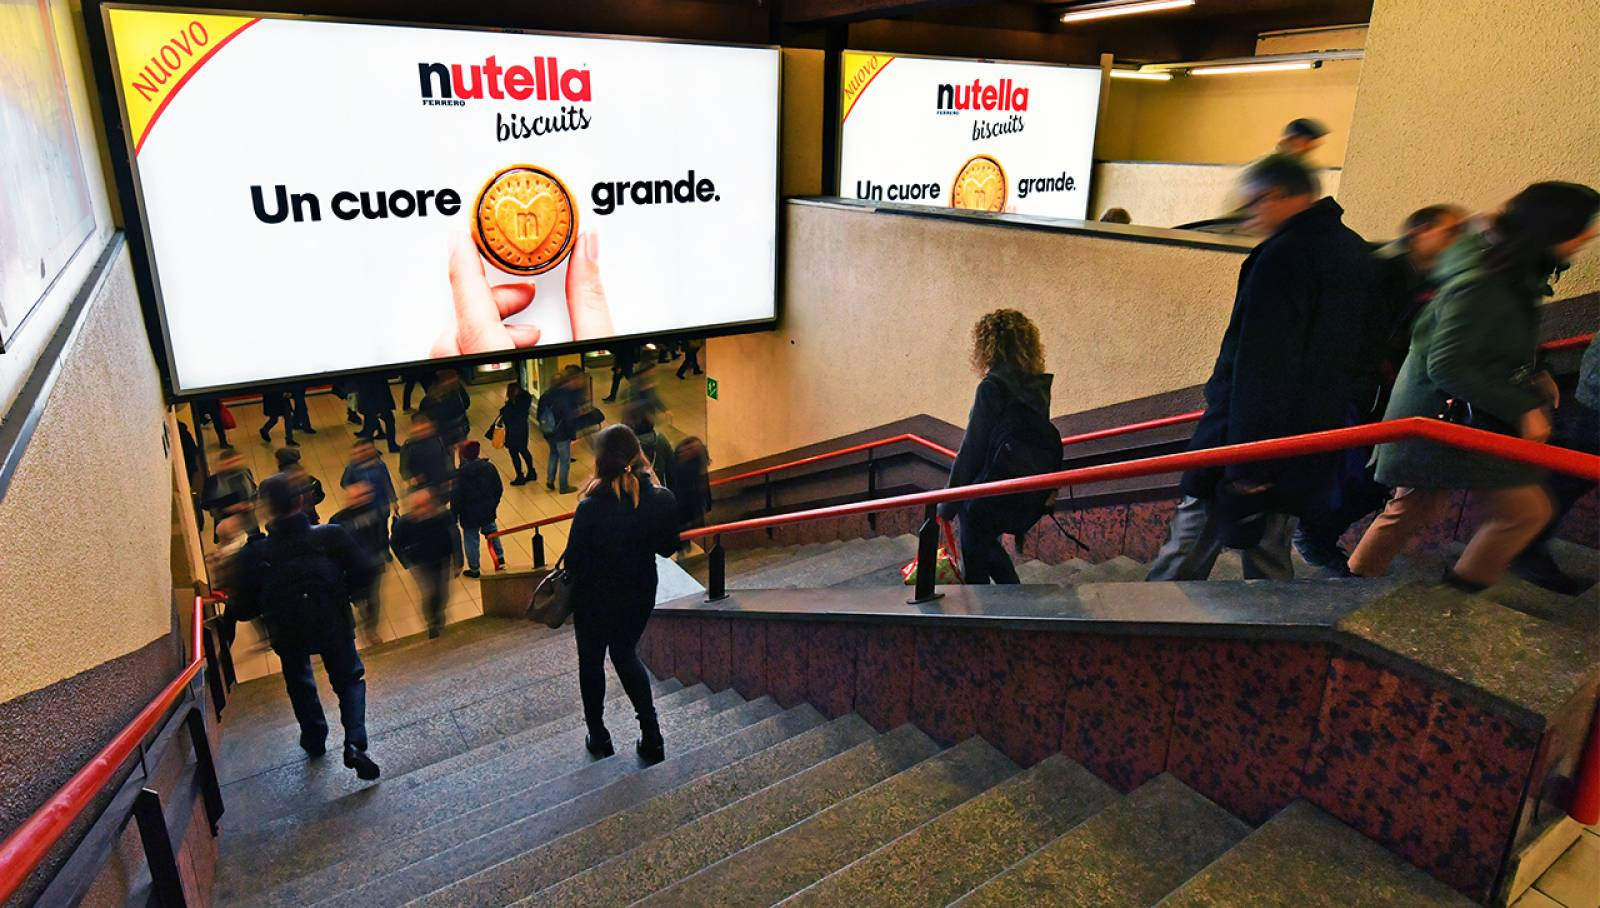 OOH IGPDecaux Station Domination for Ferrero Nutella Biscuits in Milan